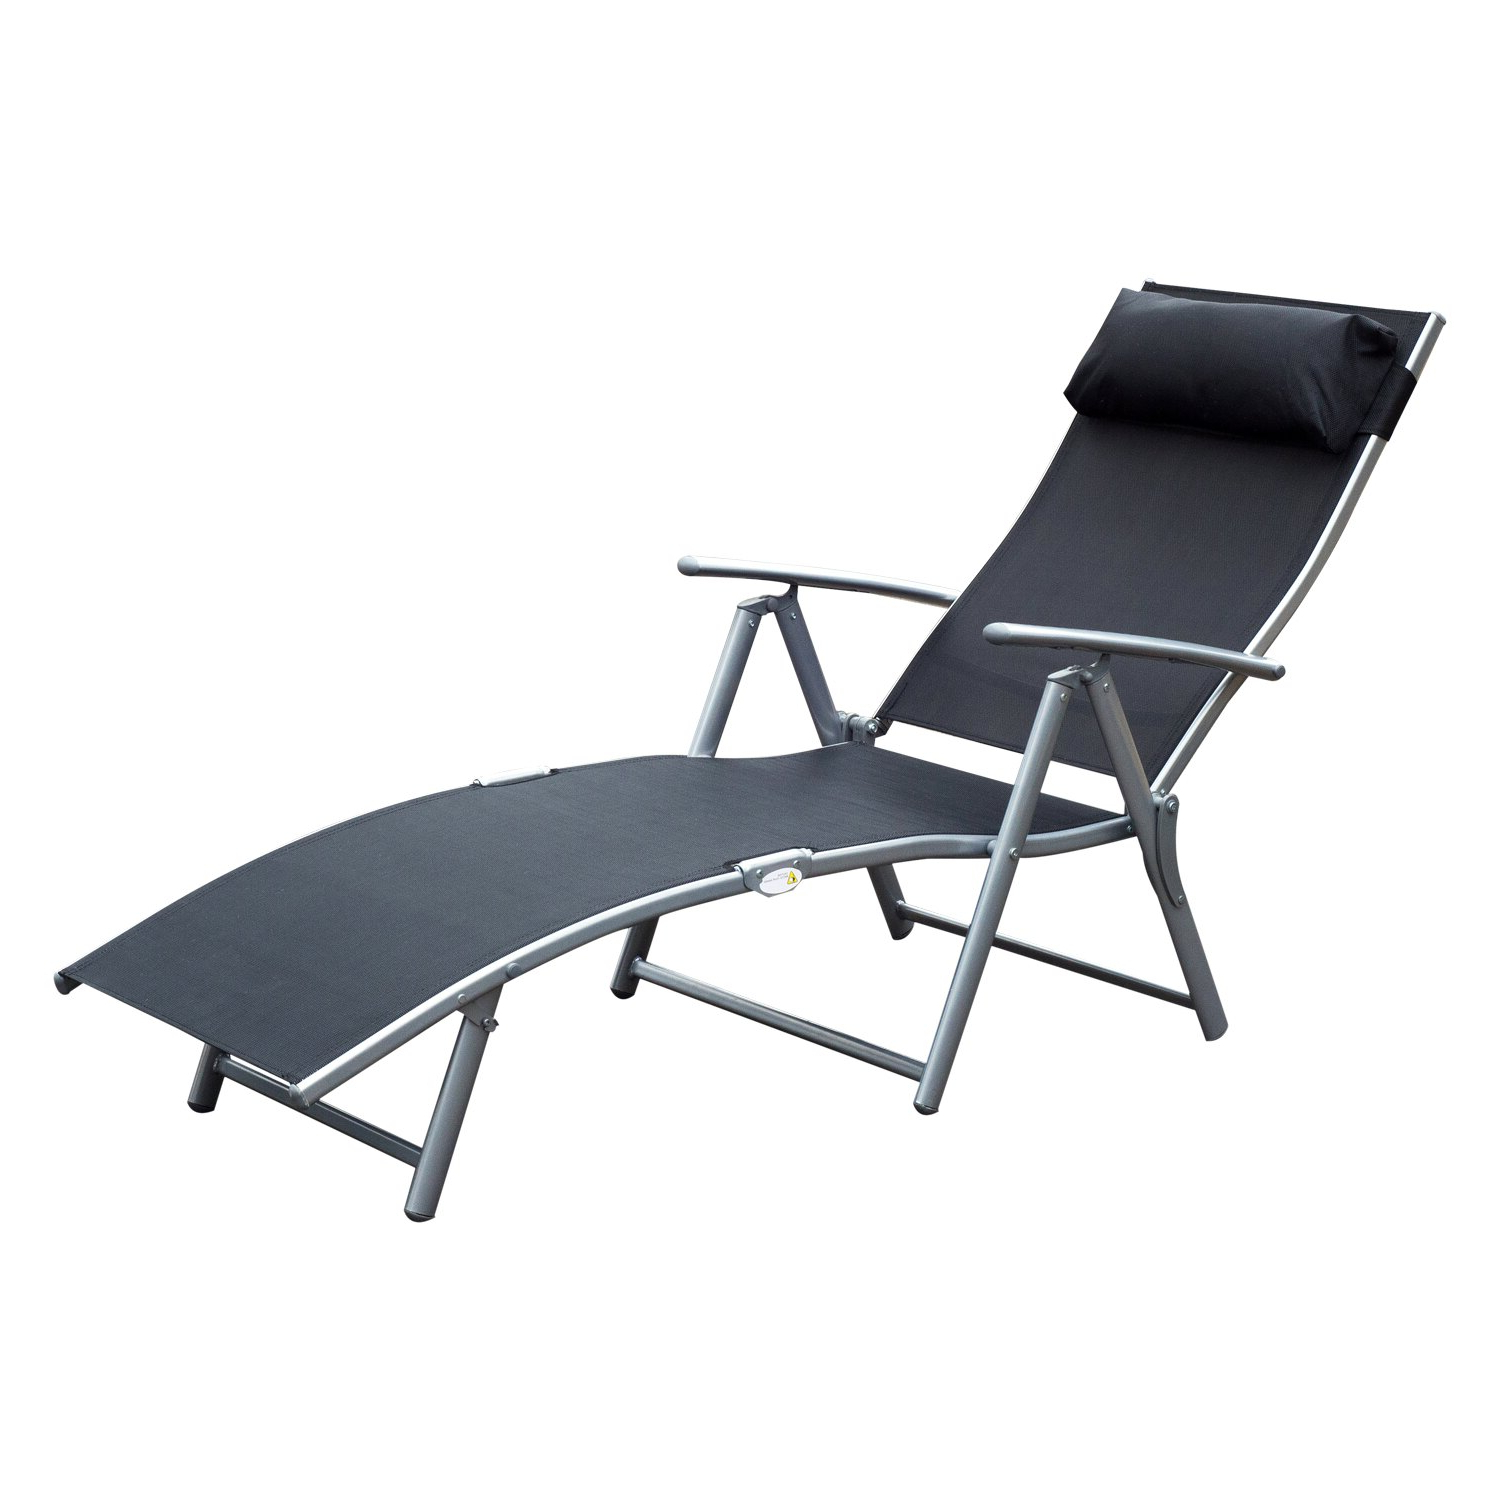 Outsunny Sling Fabric Patio Reclining Chaise Lounge Chair Folding 5  Position Adjustable Outdoor Deck With Cushion – Black In Most Popular Reclining Sling Chaise Lounges (View 15 of 25)